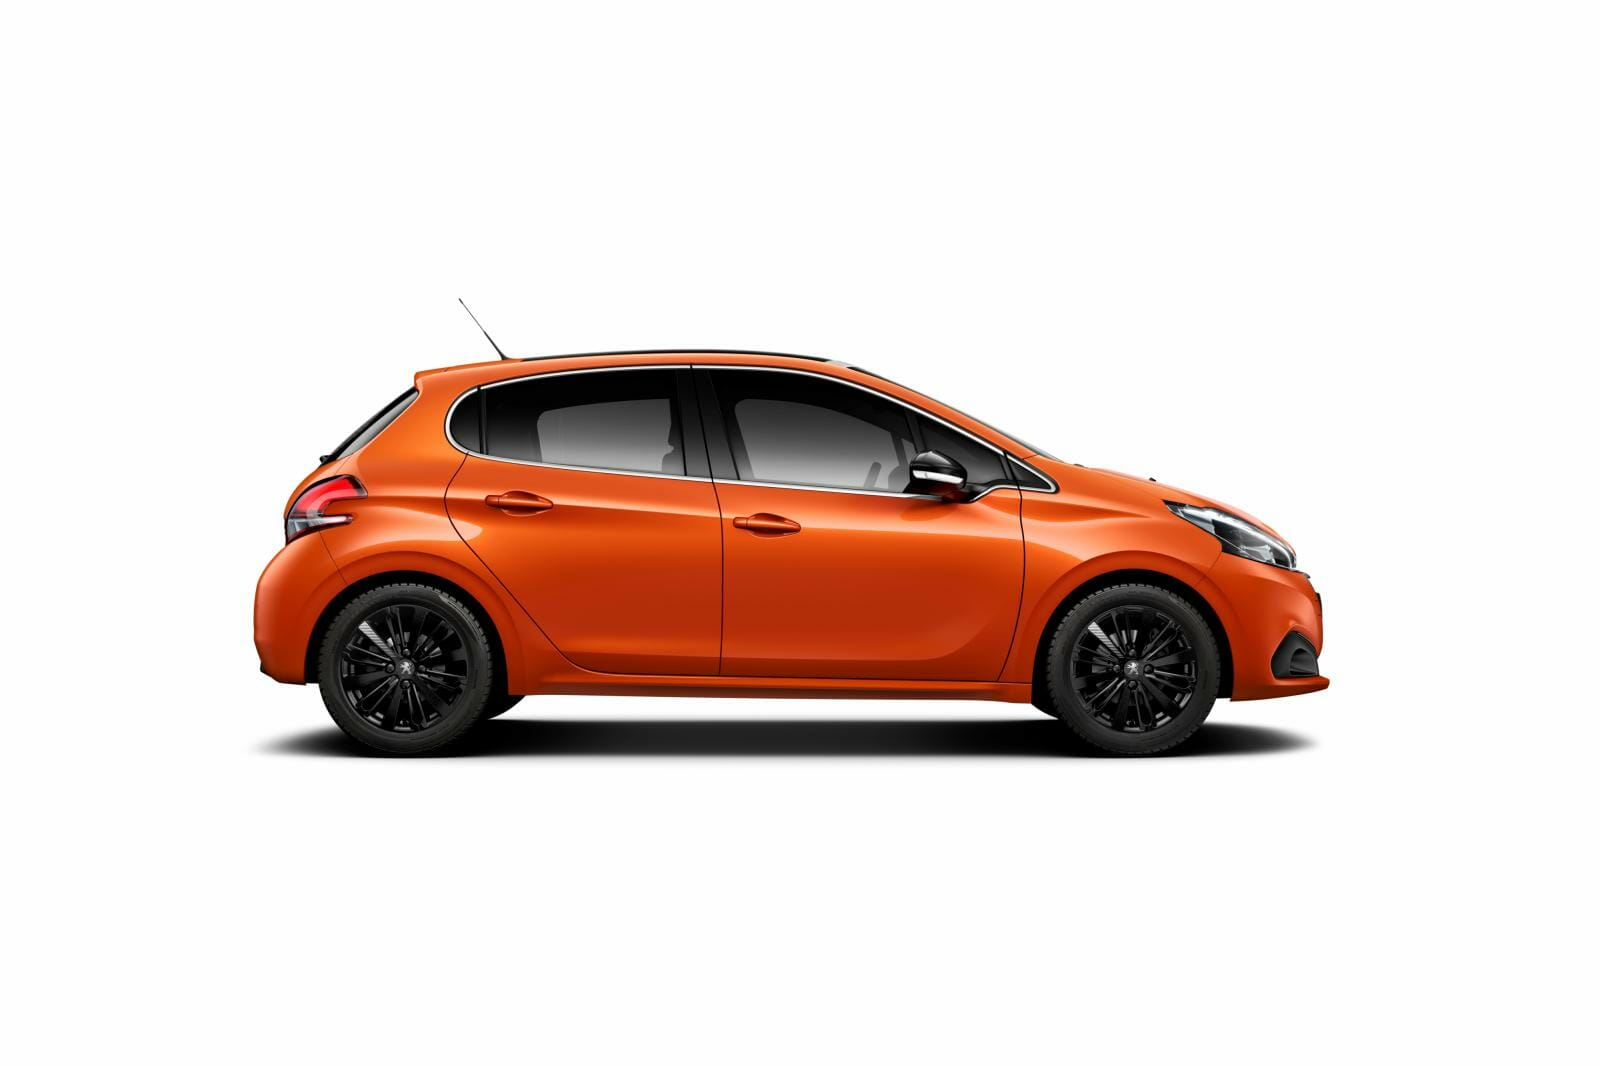 2015-peugeot-208-facelift-revealed-complete-with-12-turbo-and-orange-paint-video-photo-gallery_14